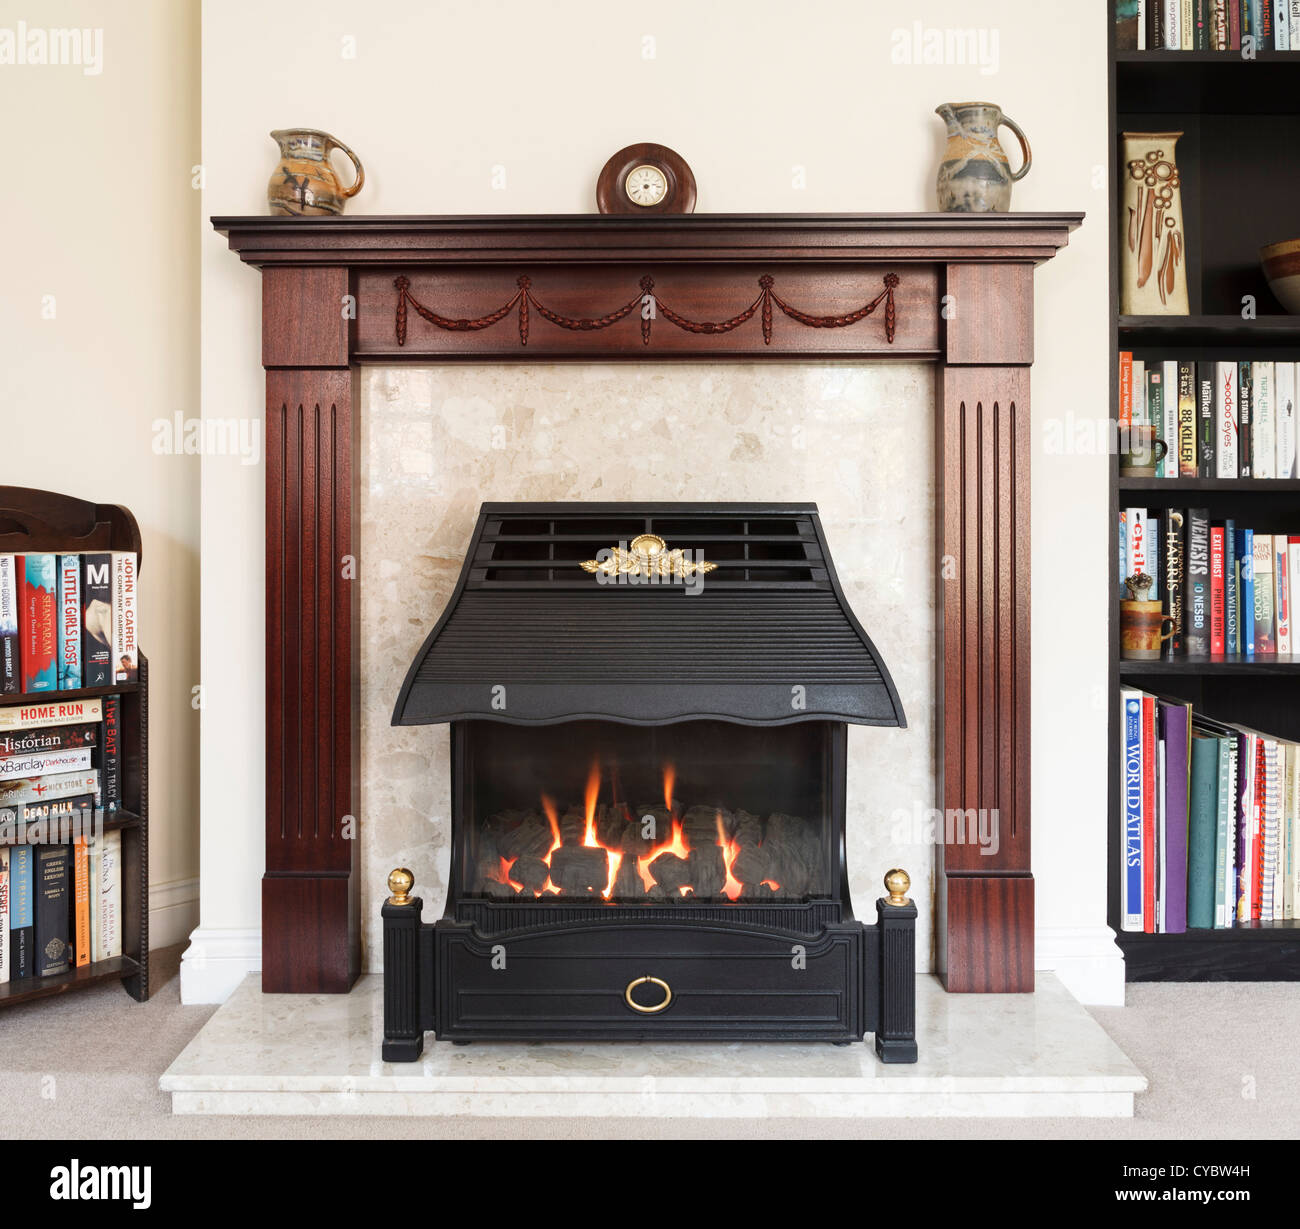 fireplace stockfotos fireplace bilder alamy. Black Bedroom Furniture Sets. Home Design Ideas